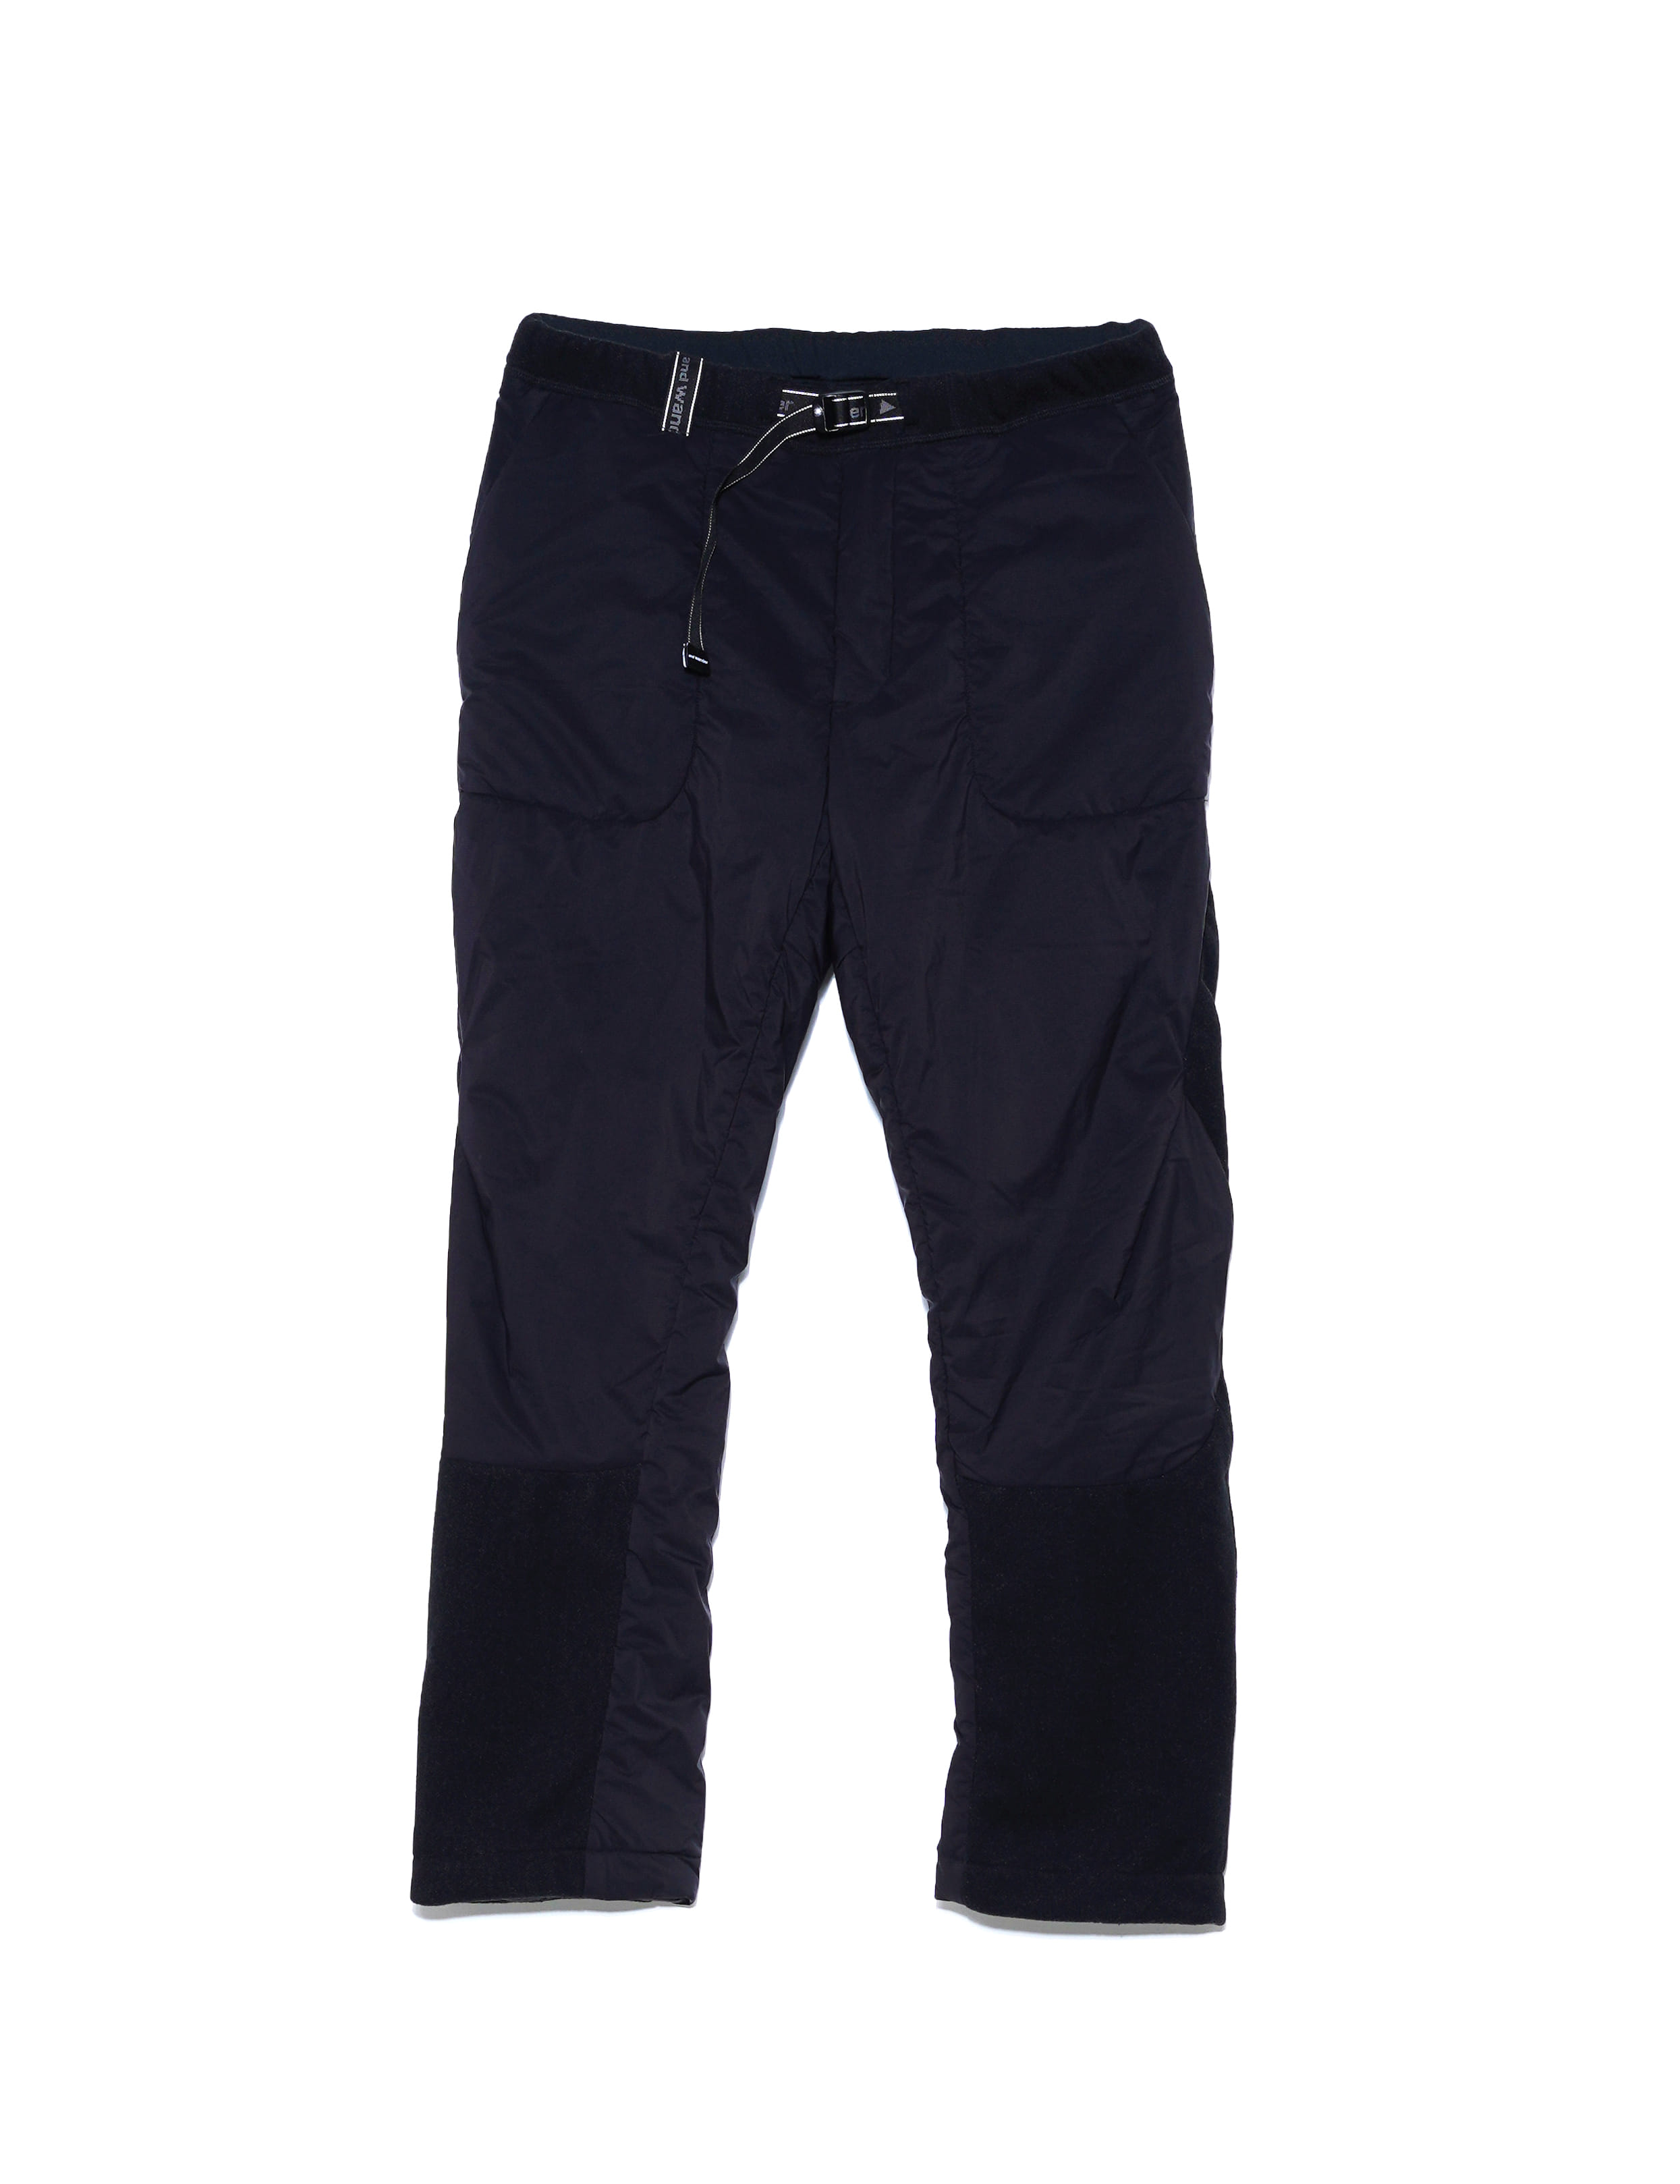 TOP FLEECE PANTS (BLACK)